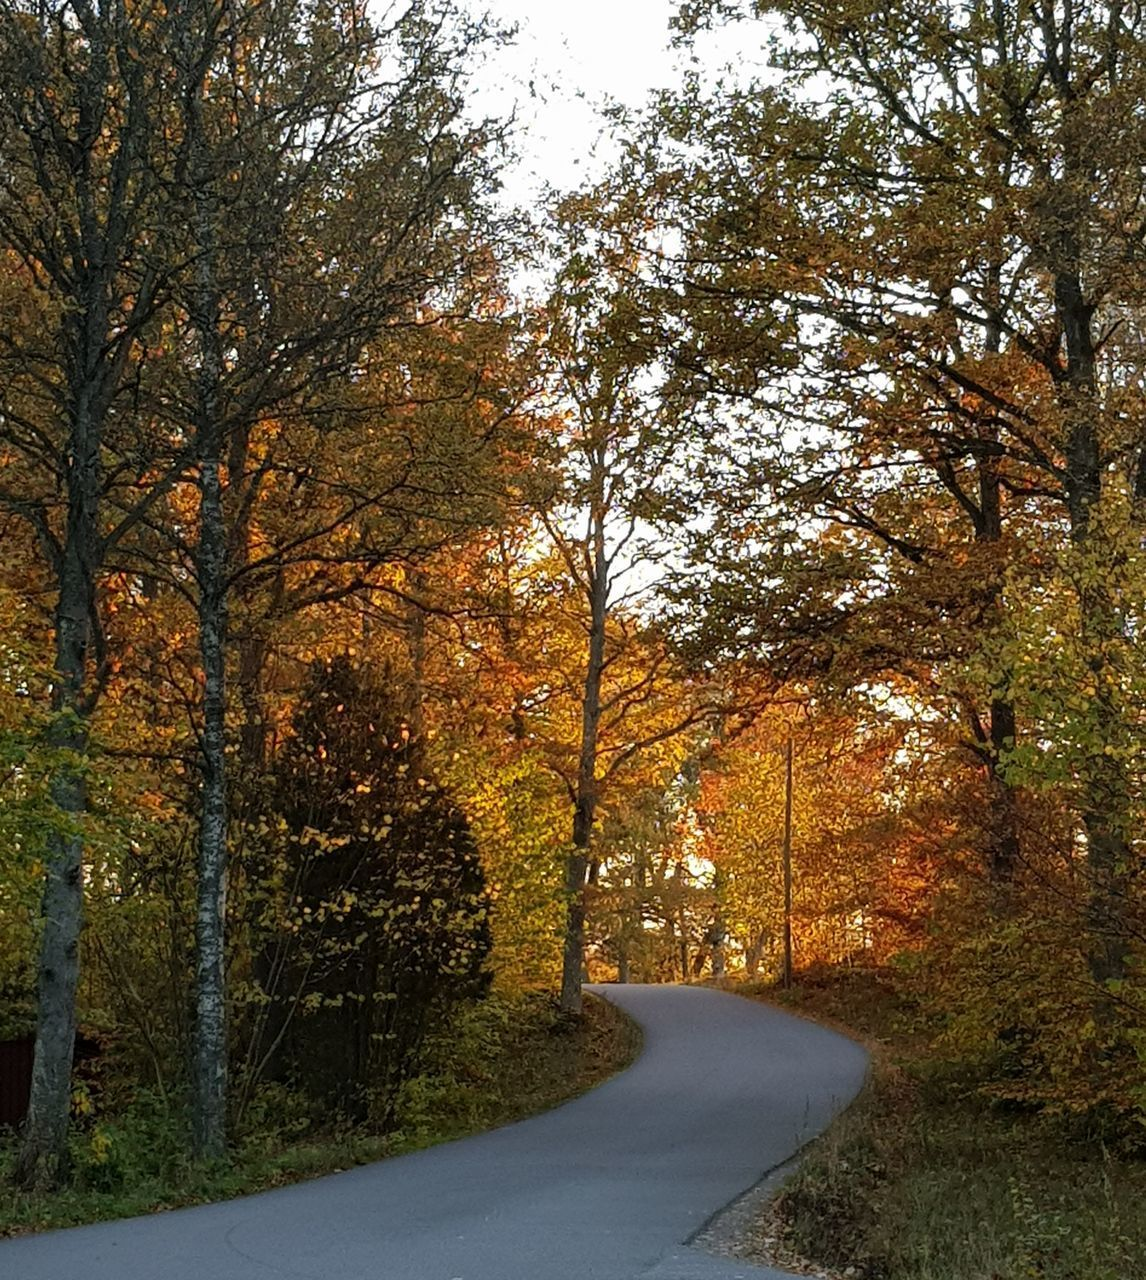 ROAD BY TREES DURING AUTUMN